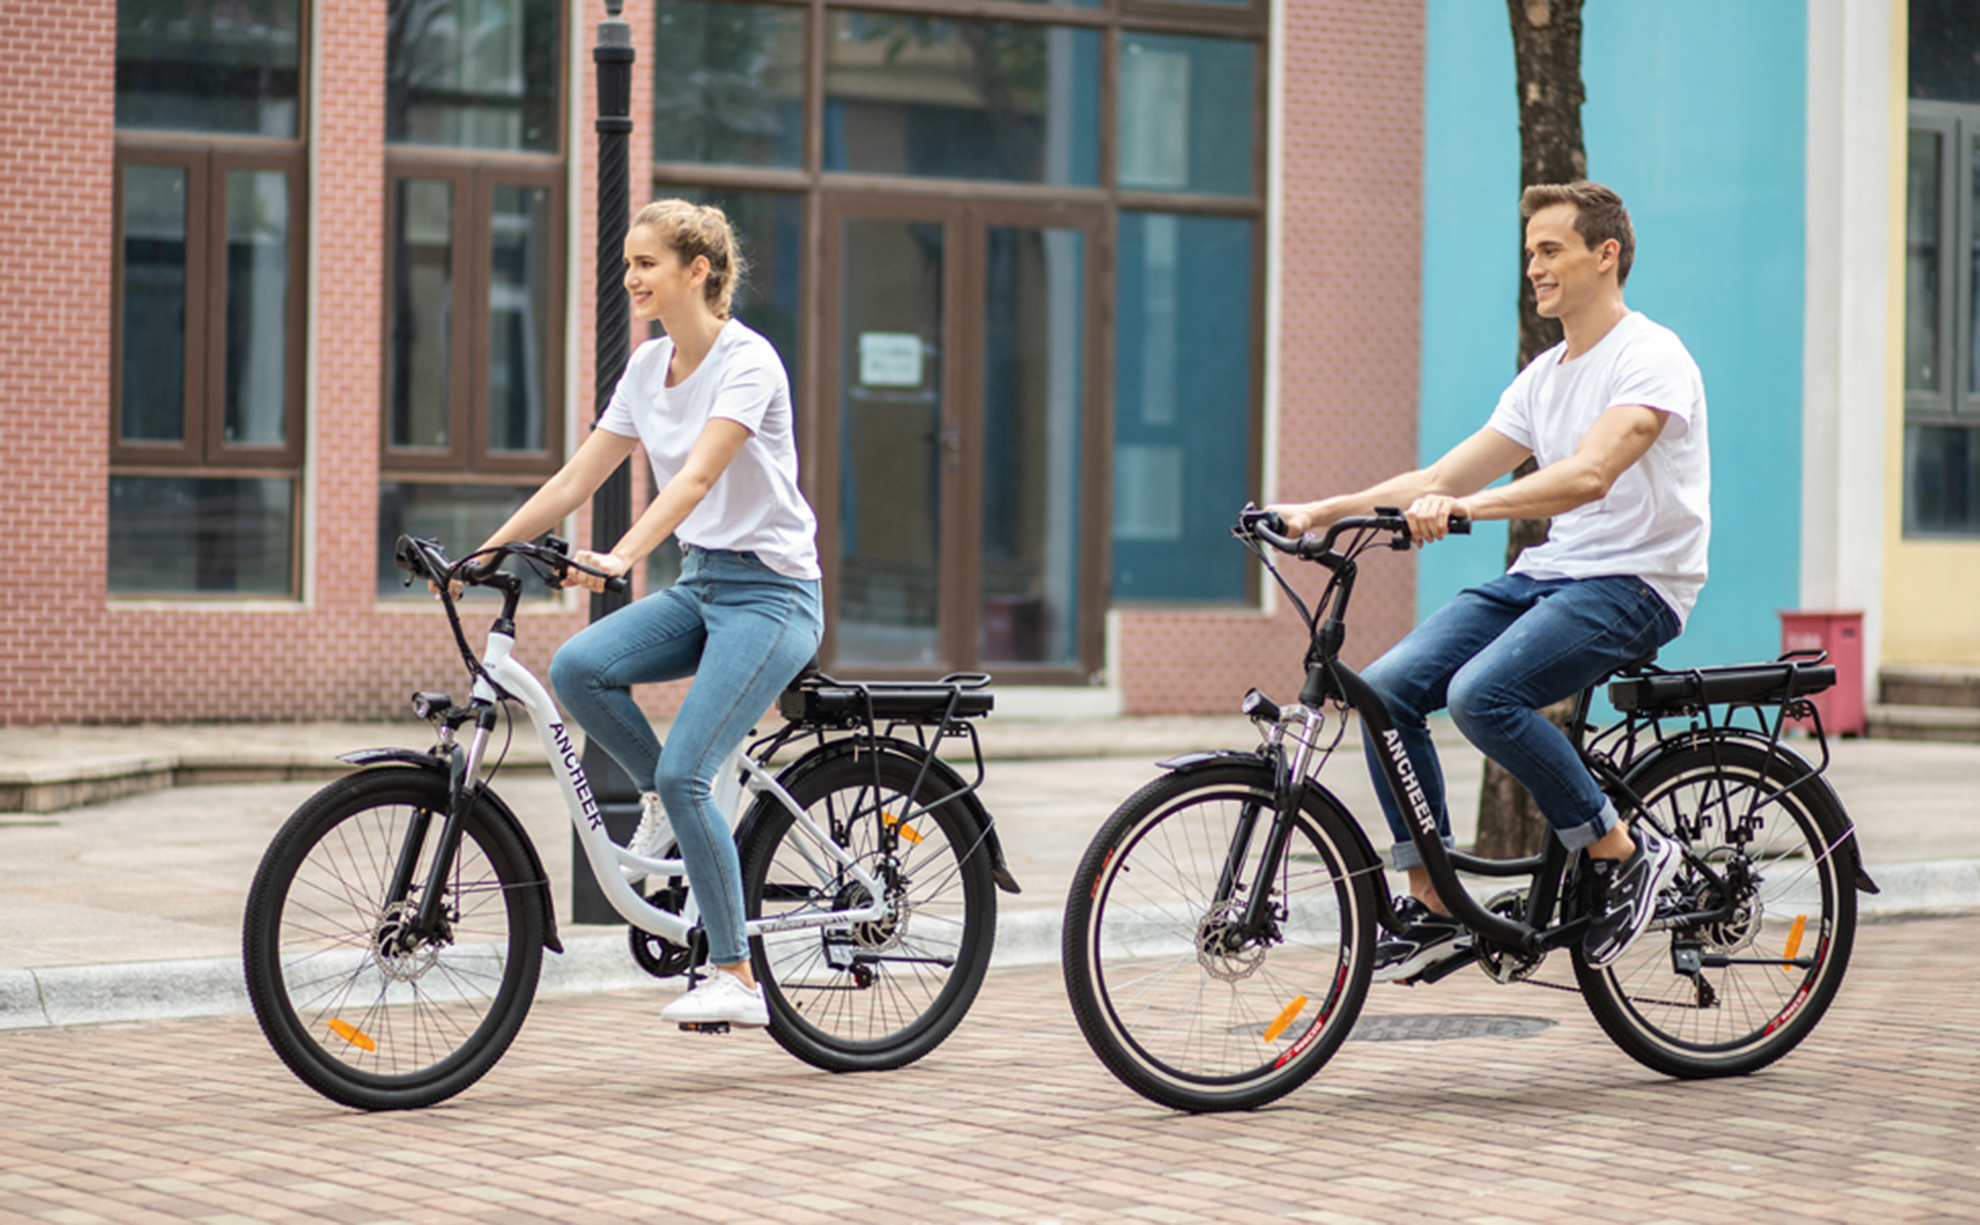 Ancheer Bikes e-bikes are for commuters